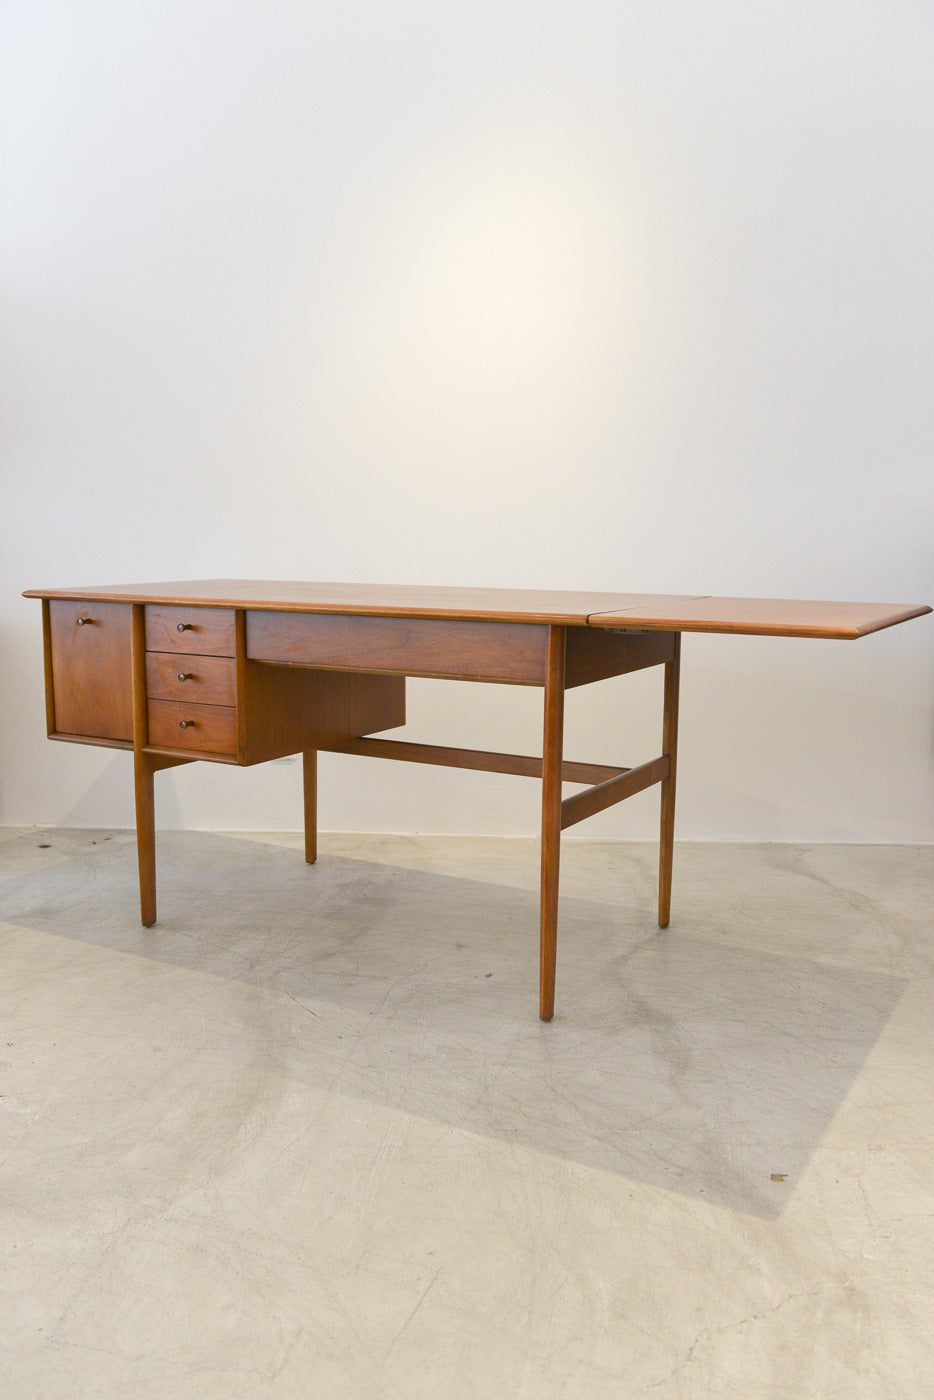 Barney flagg for drexel parallel walnut drop leaf desk at 1stdibs barney flagg for drexel parallel walnut drop leaf desk 2 geotapseo Image collections